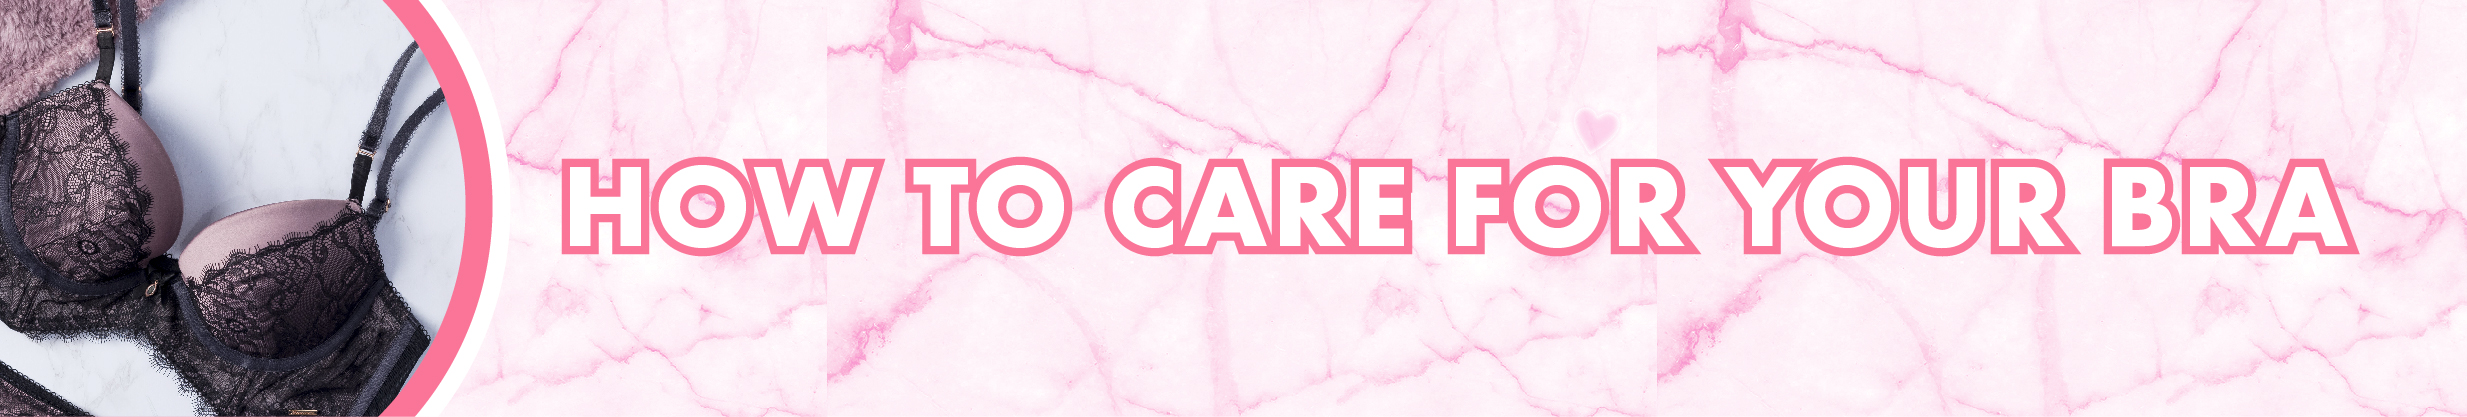 how to care for your bra banner